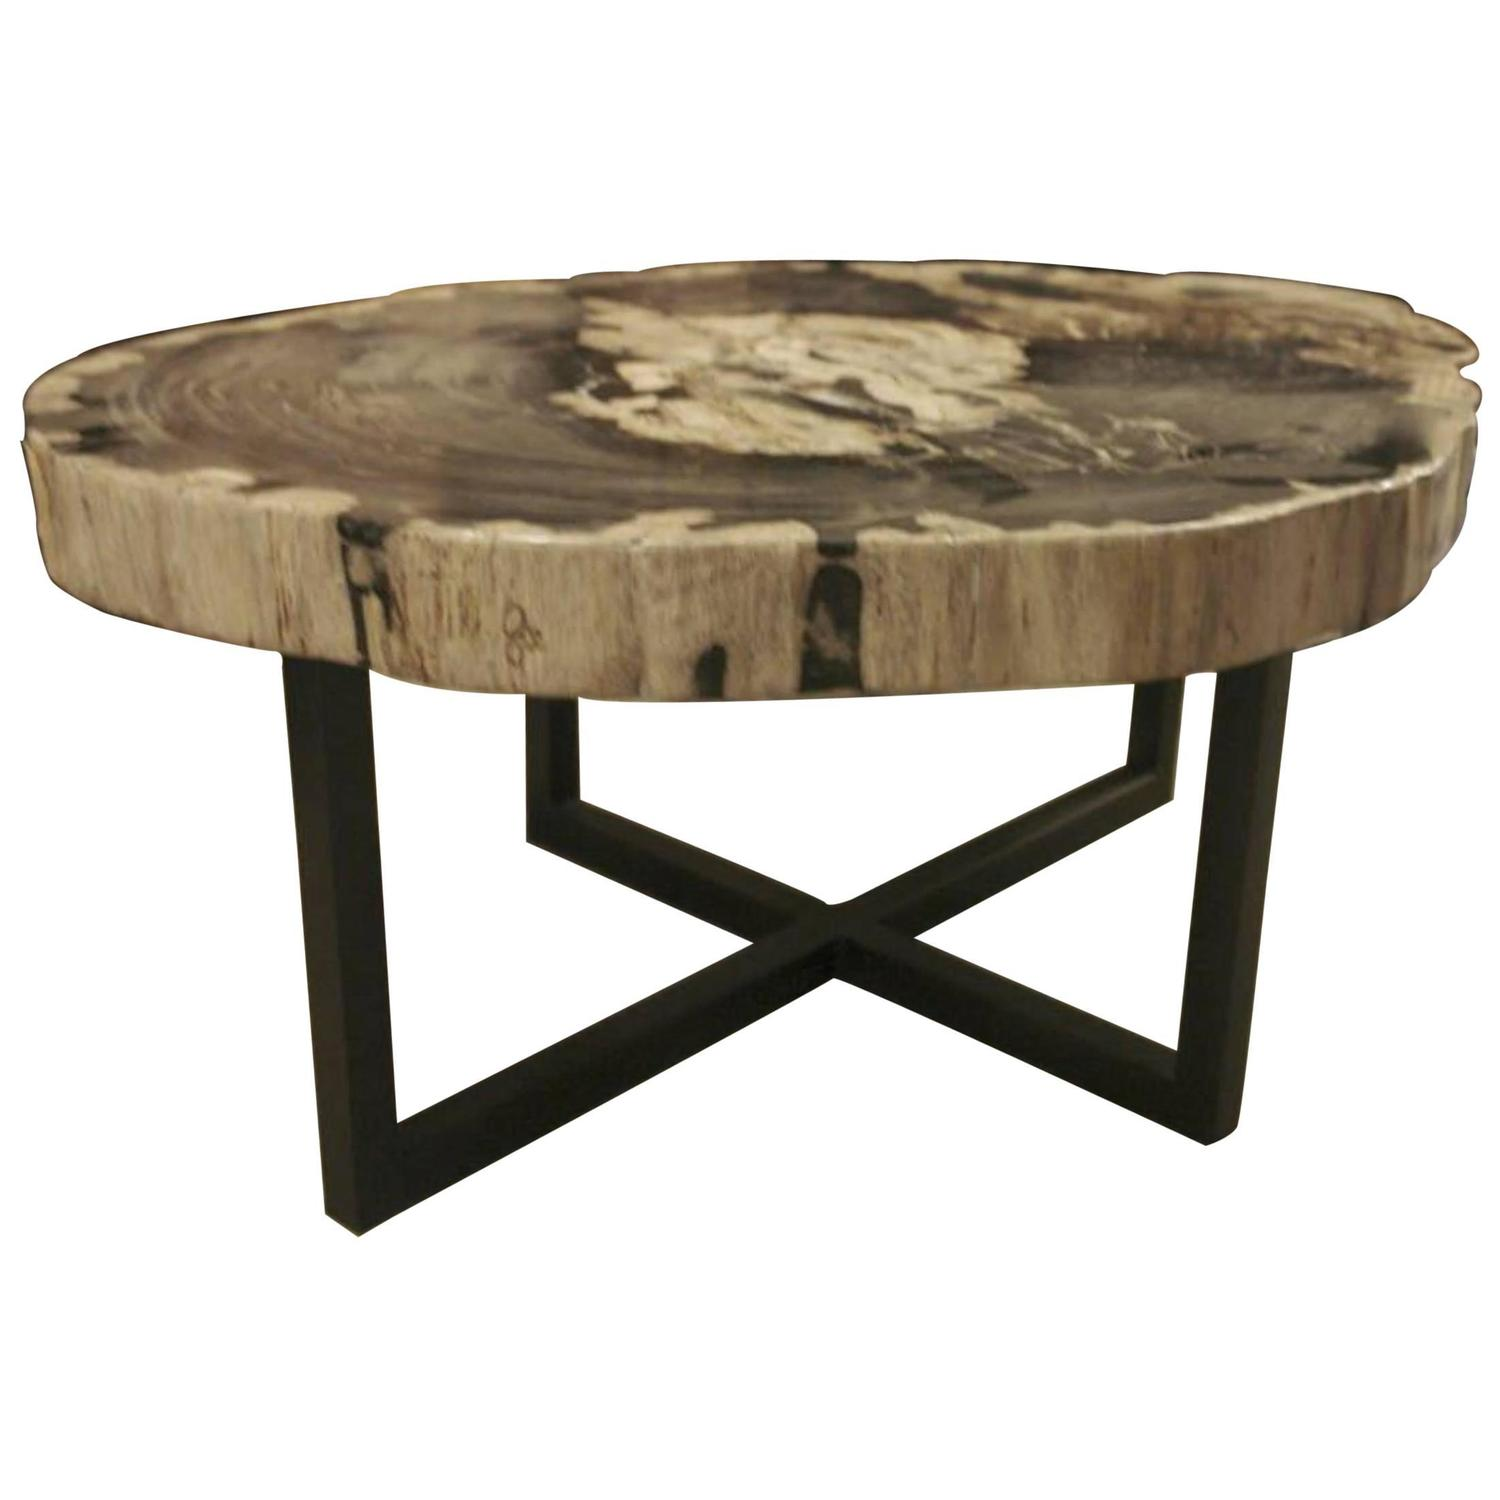 Petrified wood extra large extra thick coffee table for Large wood coffee table